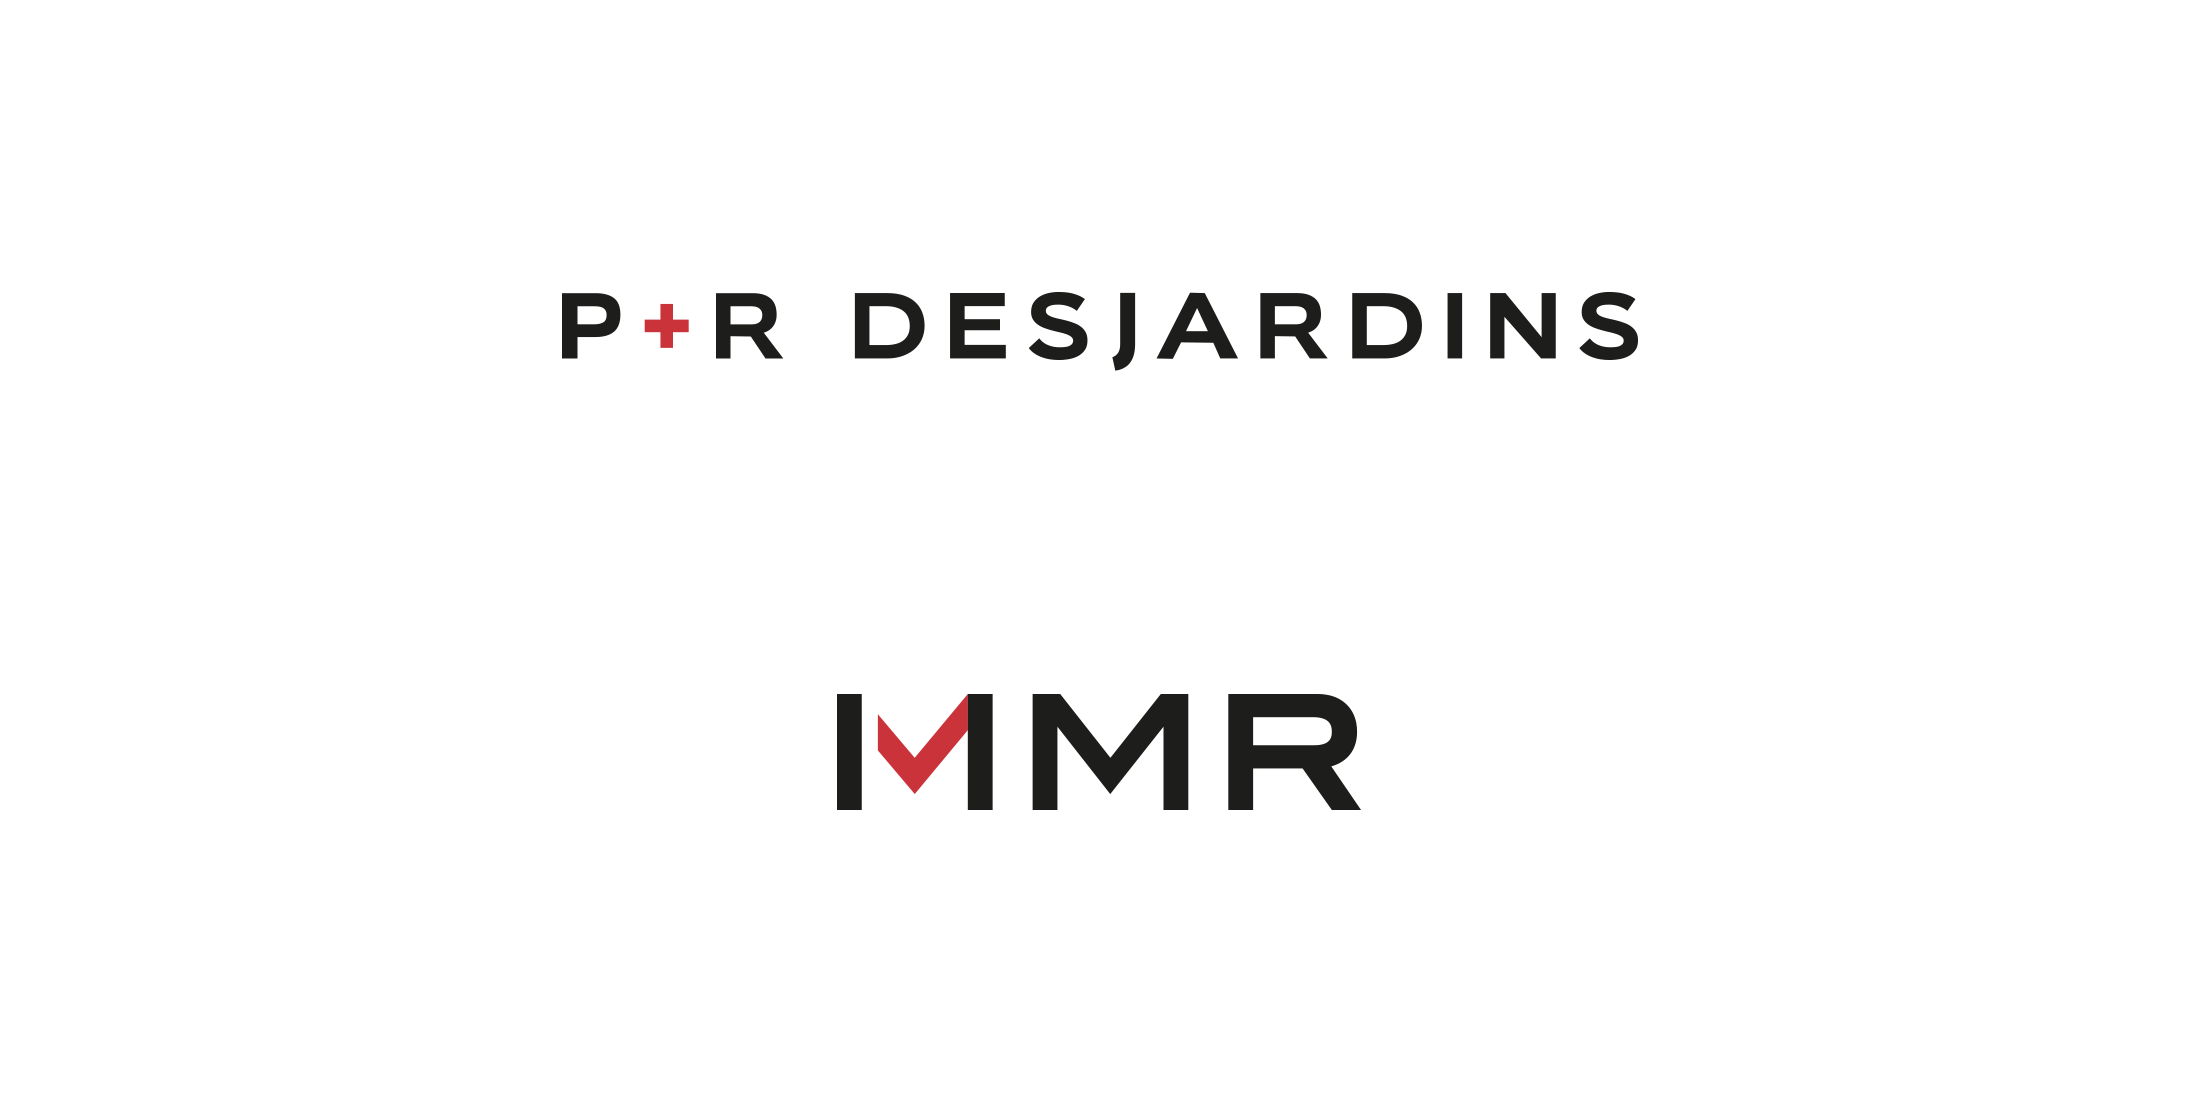 P&R Desjardins and MMR logos